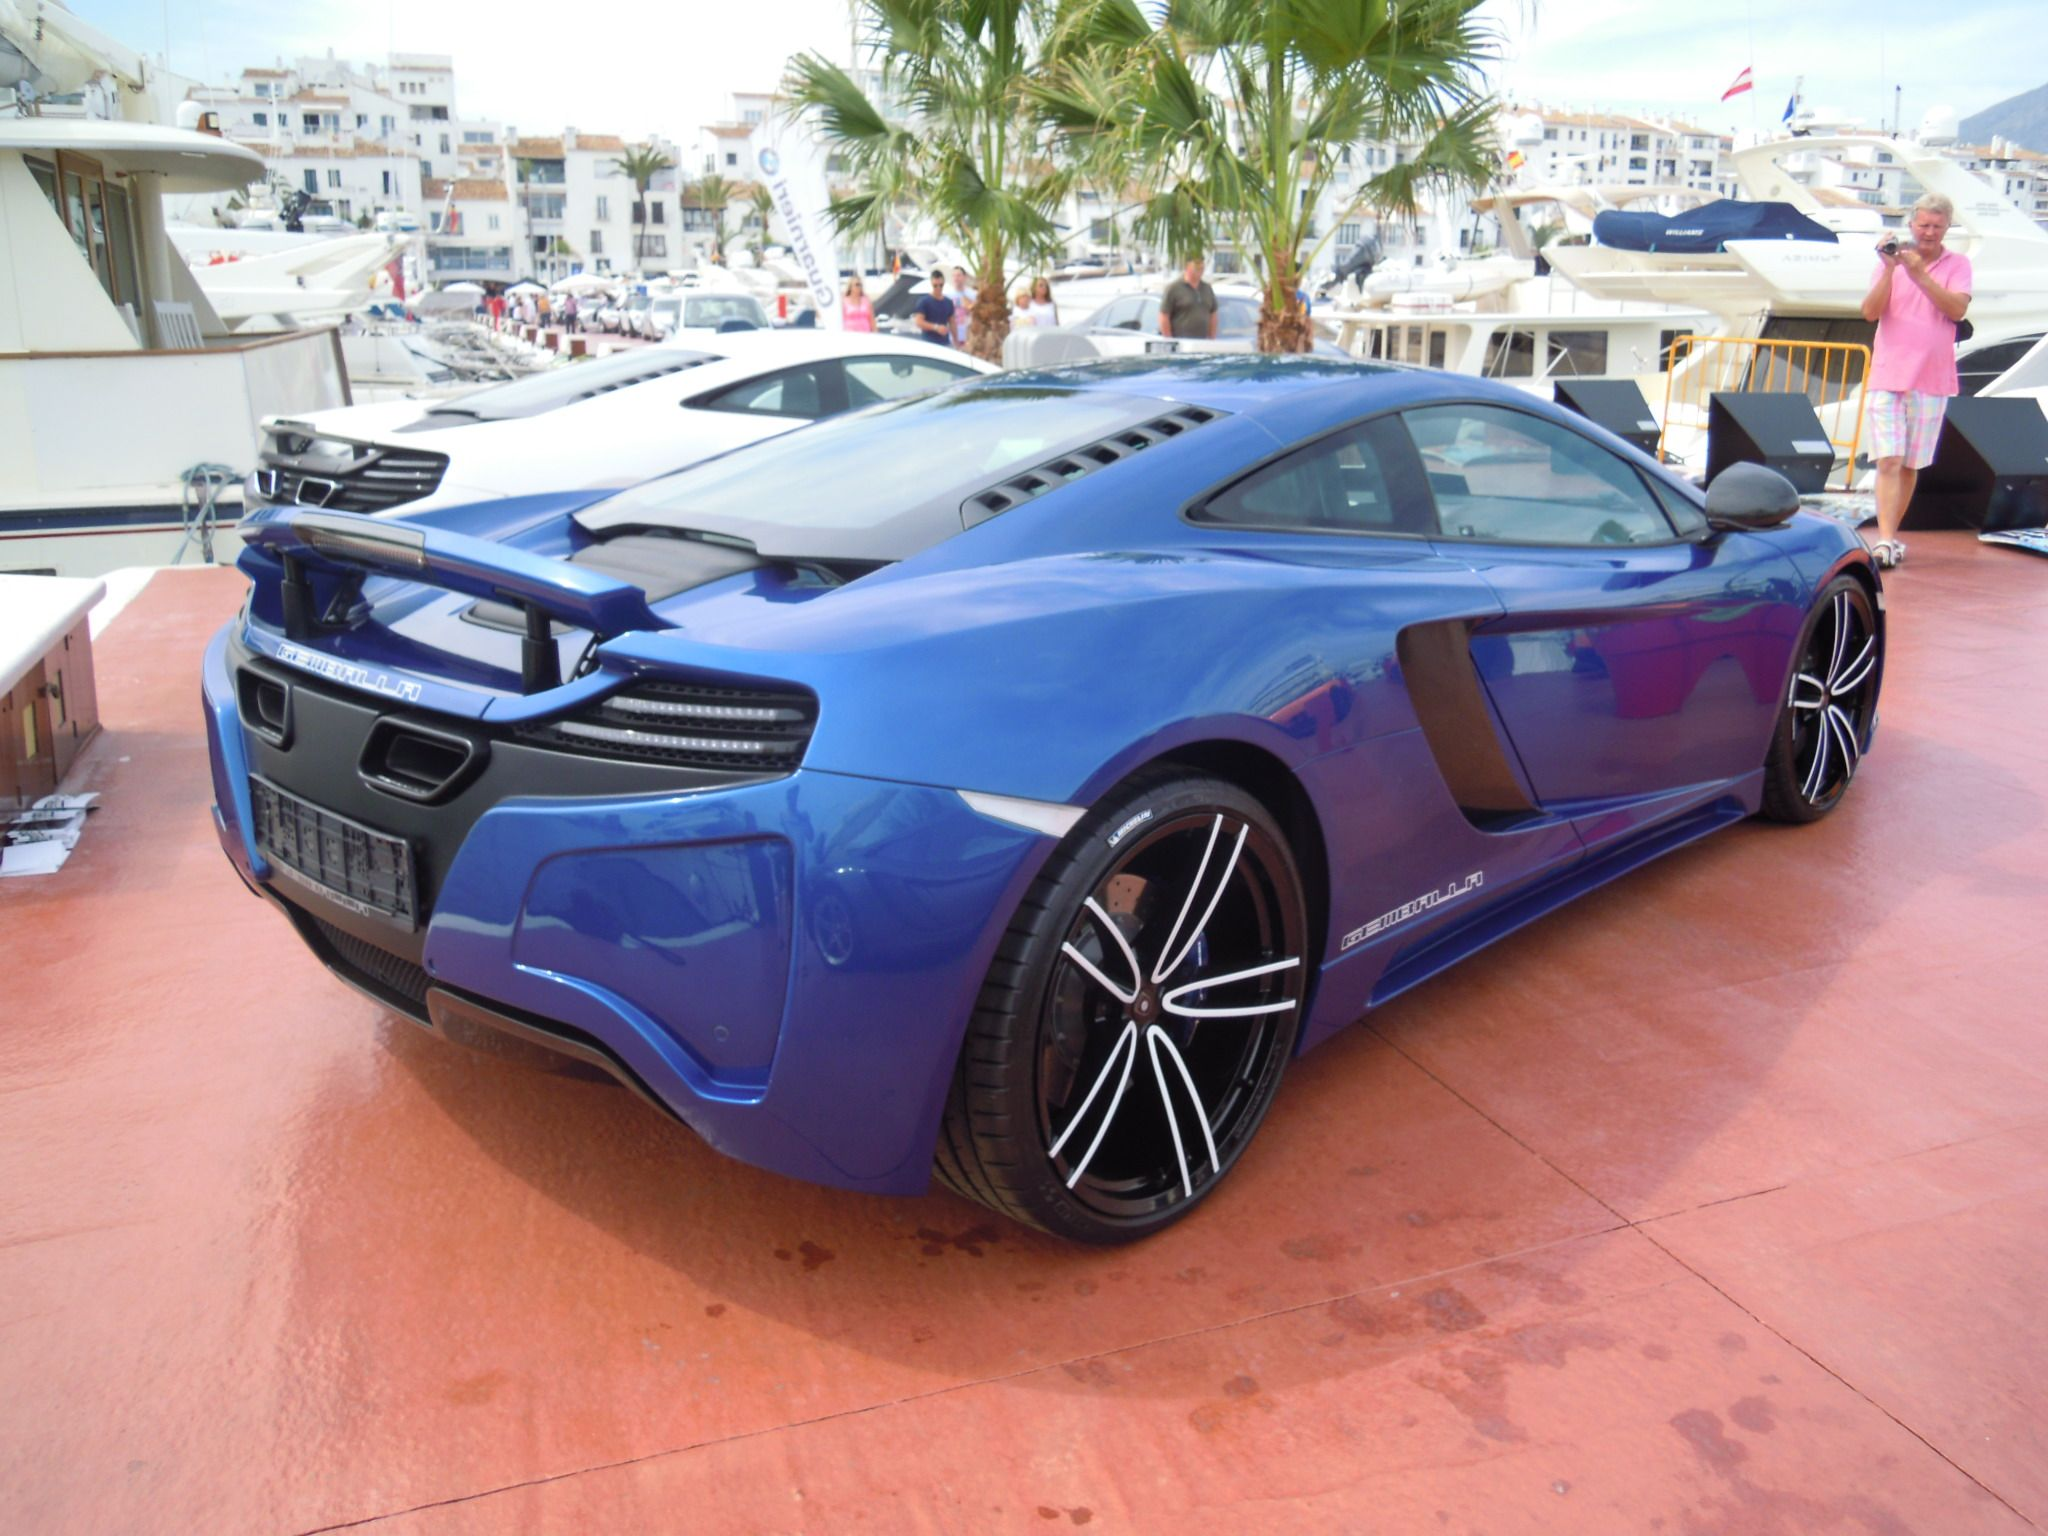 Cars for Sale Near Me Best Of Unique Luxury Cars for Sale Near Me Wel E to Be Able to the Blog